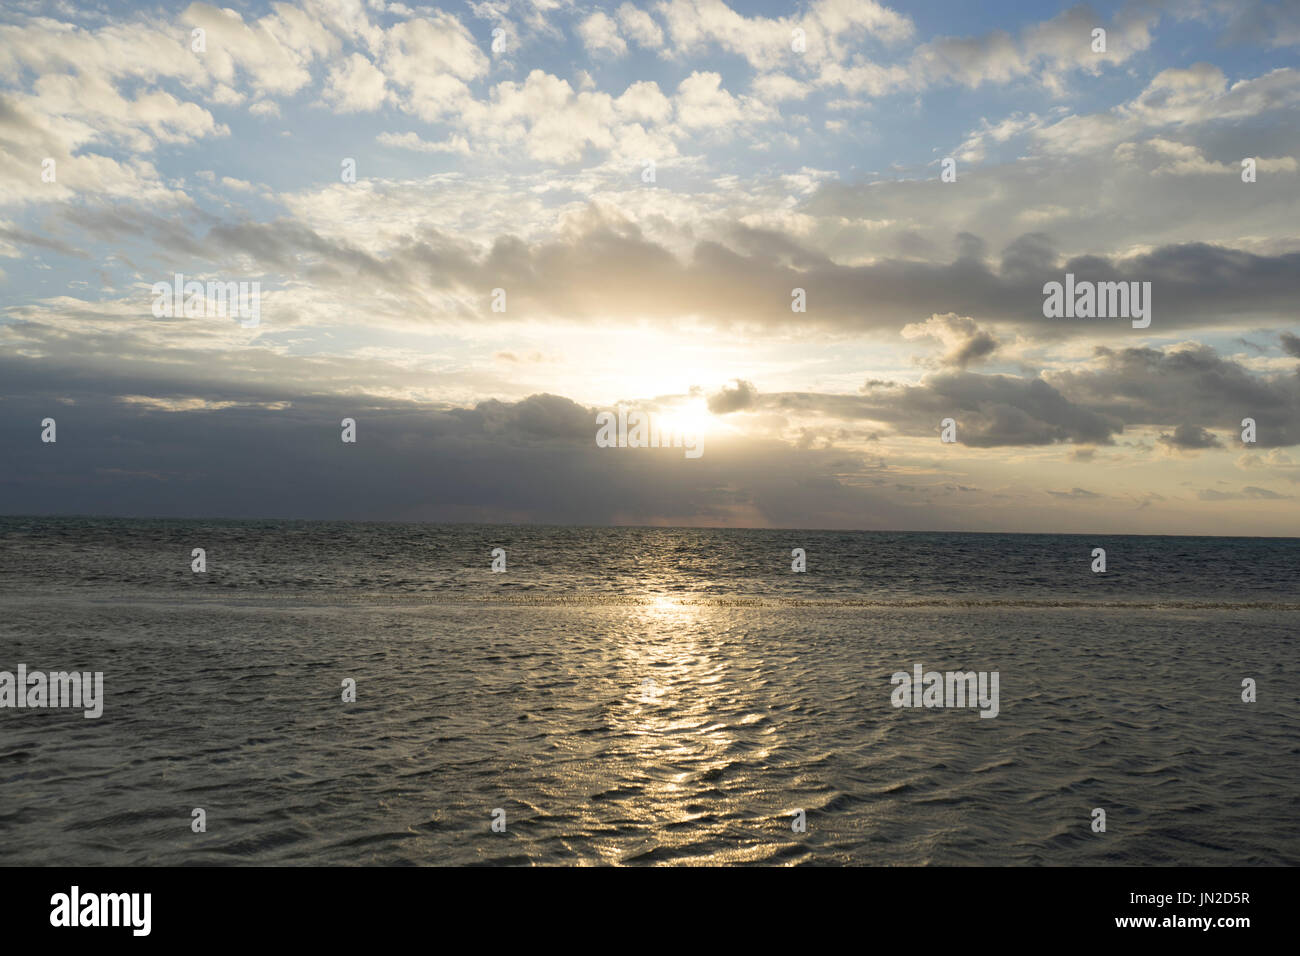 Sunrise with Clouds and Calm waters Stock Photo